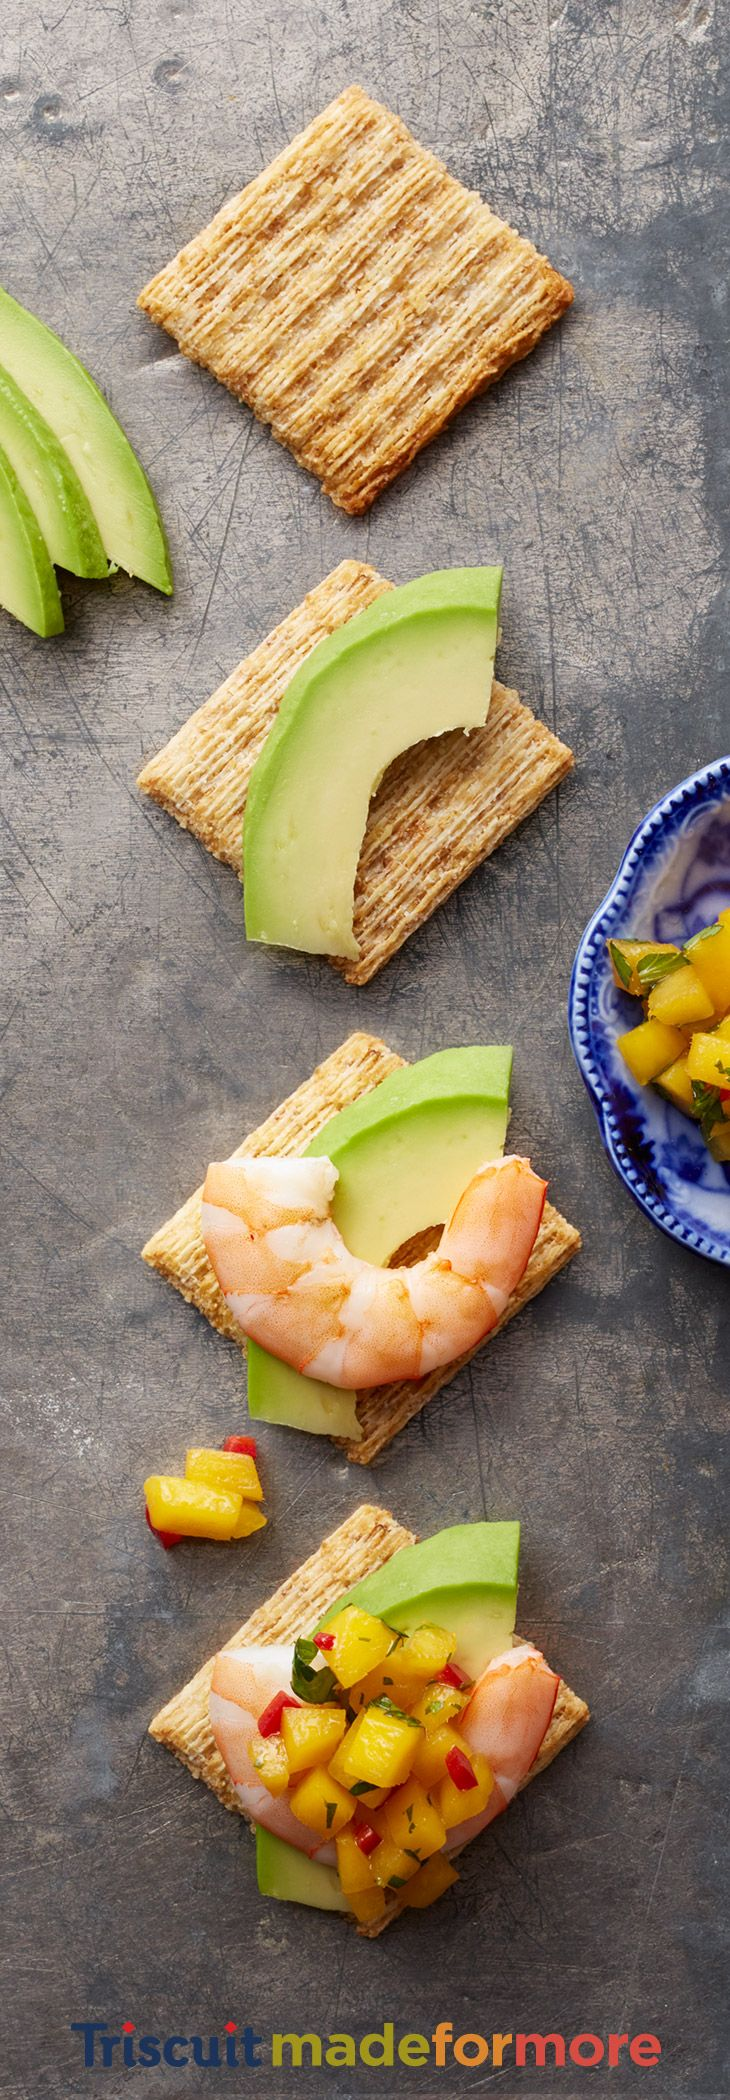 Take your mouth on a summer vacation with the tropical taste of shrimp and mango topped with avocado on your favorite Triscuit. Find more recipes like the delicious avoangoimpscuit on our Triscuit boards.